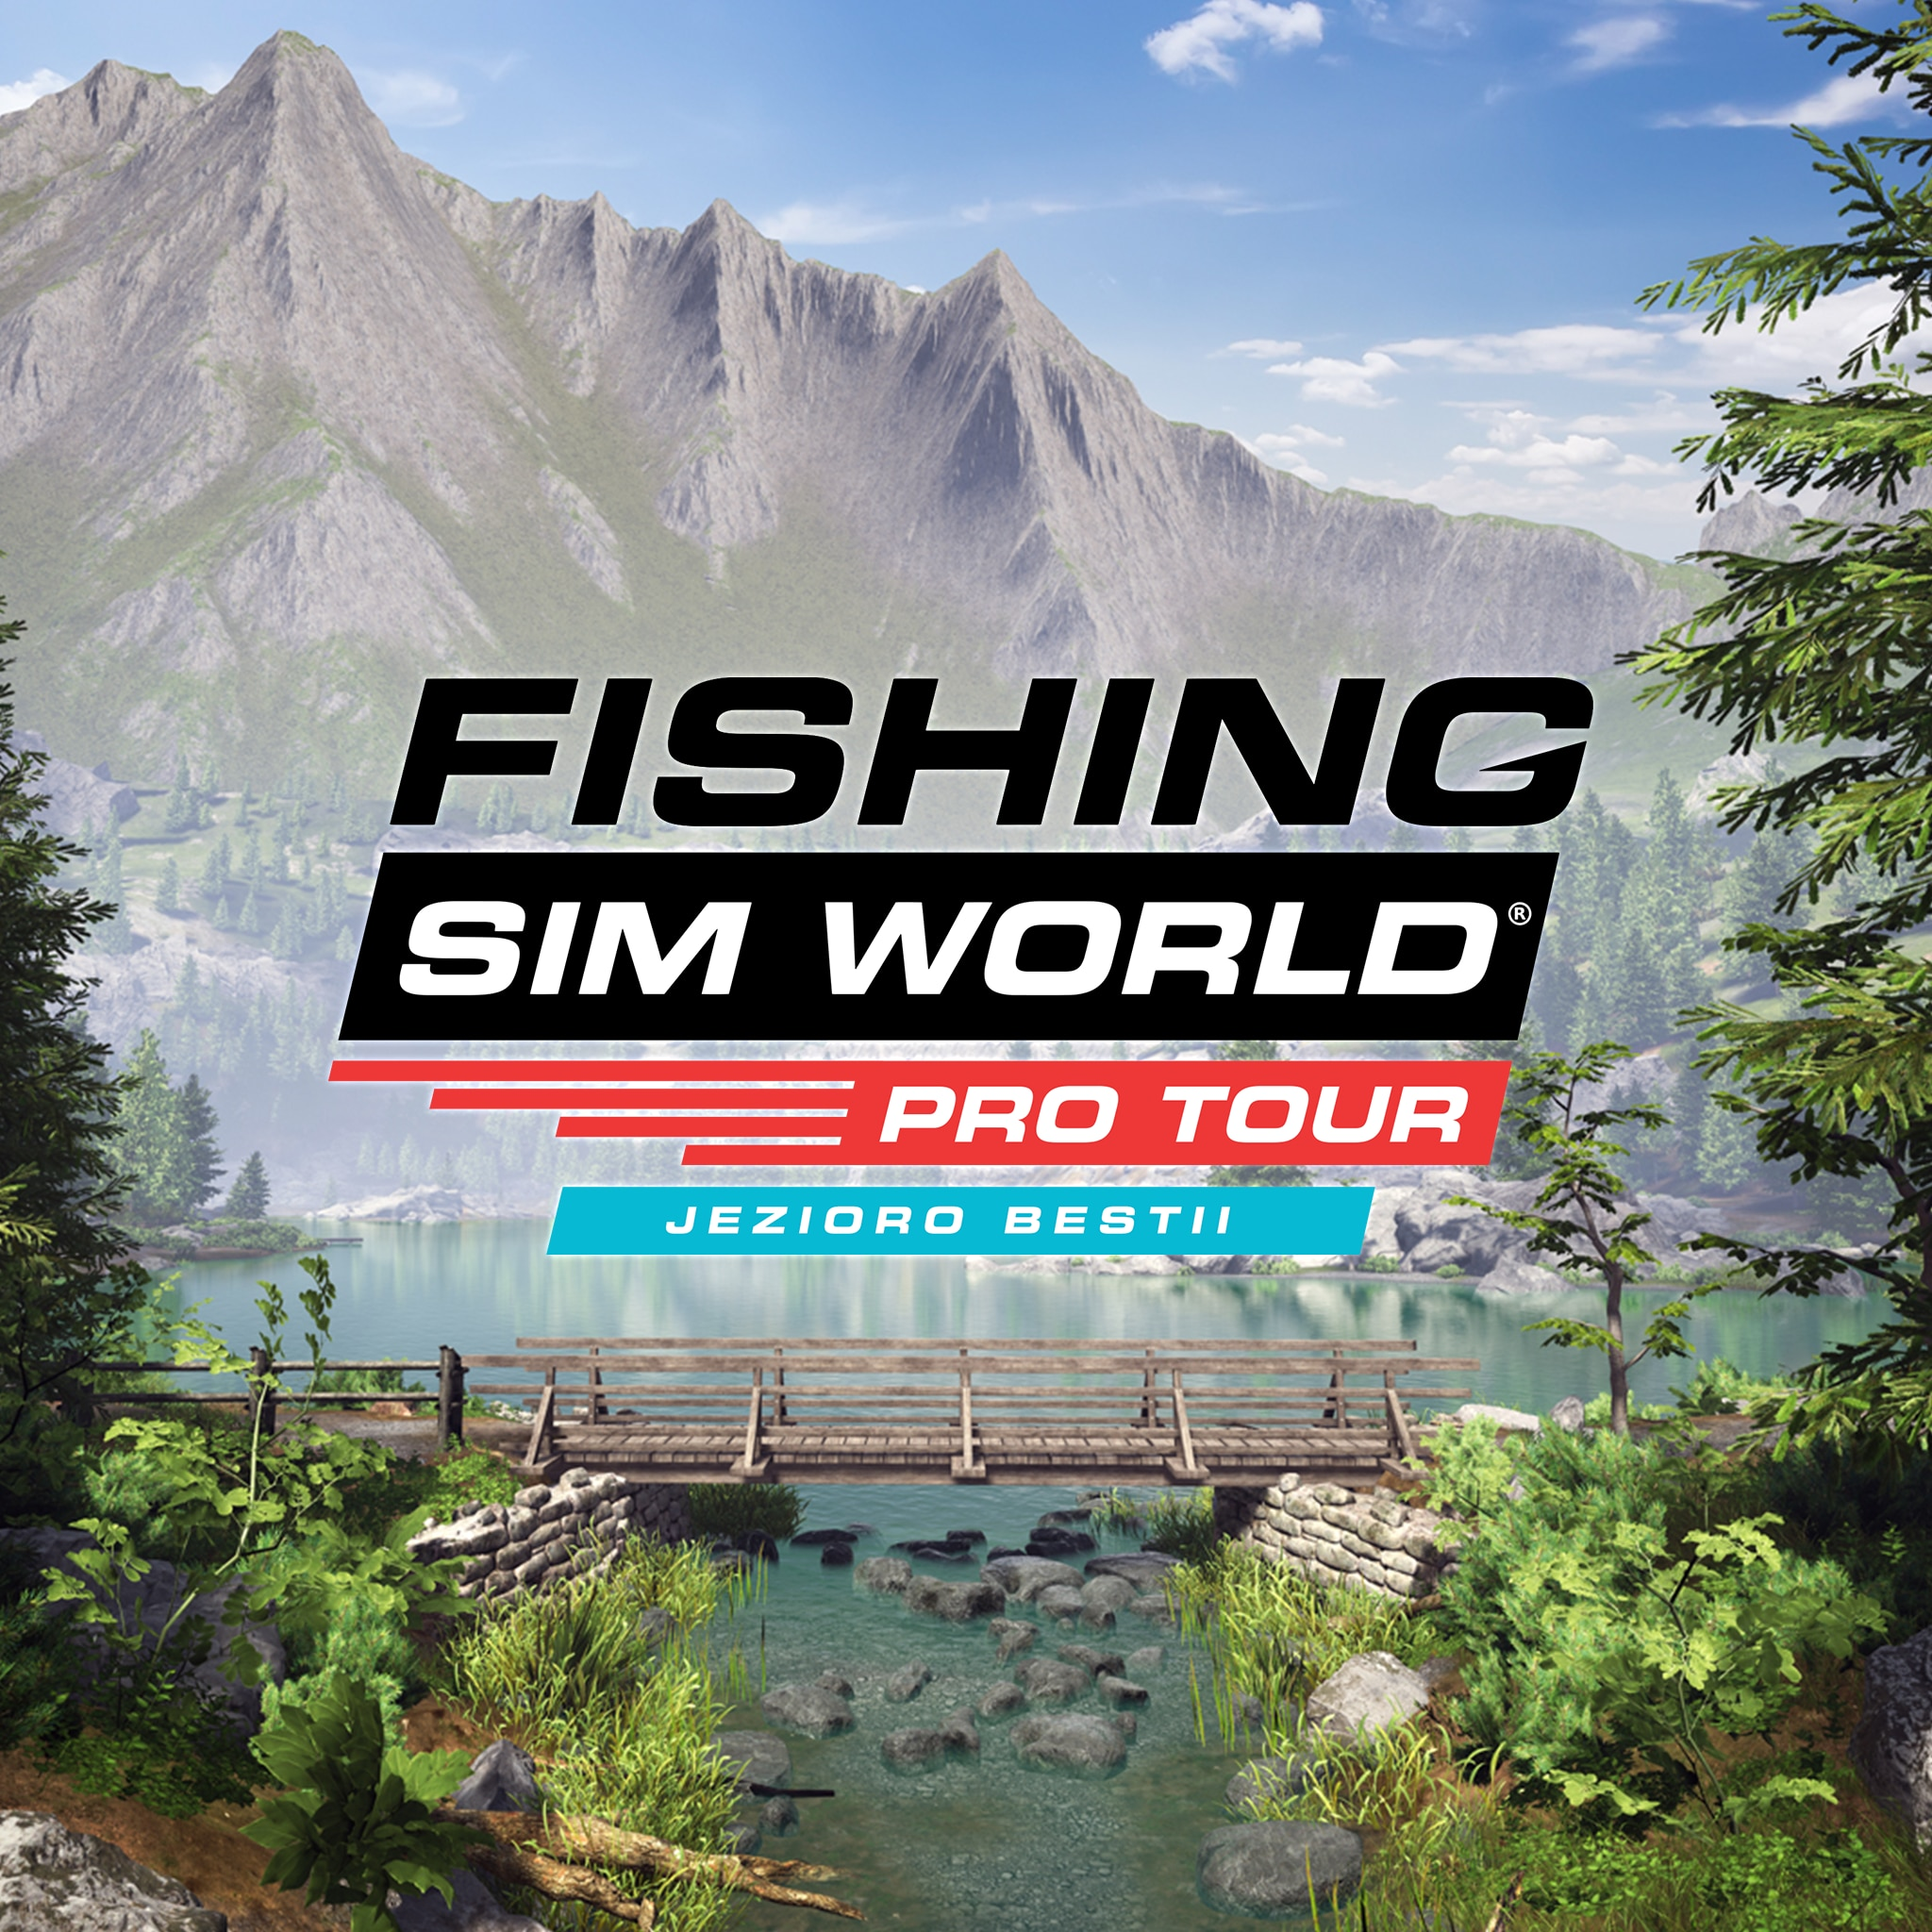 Fishing Sim World®: Pro Tour - Jezioro Bestii